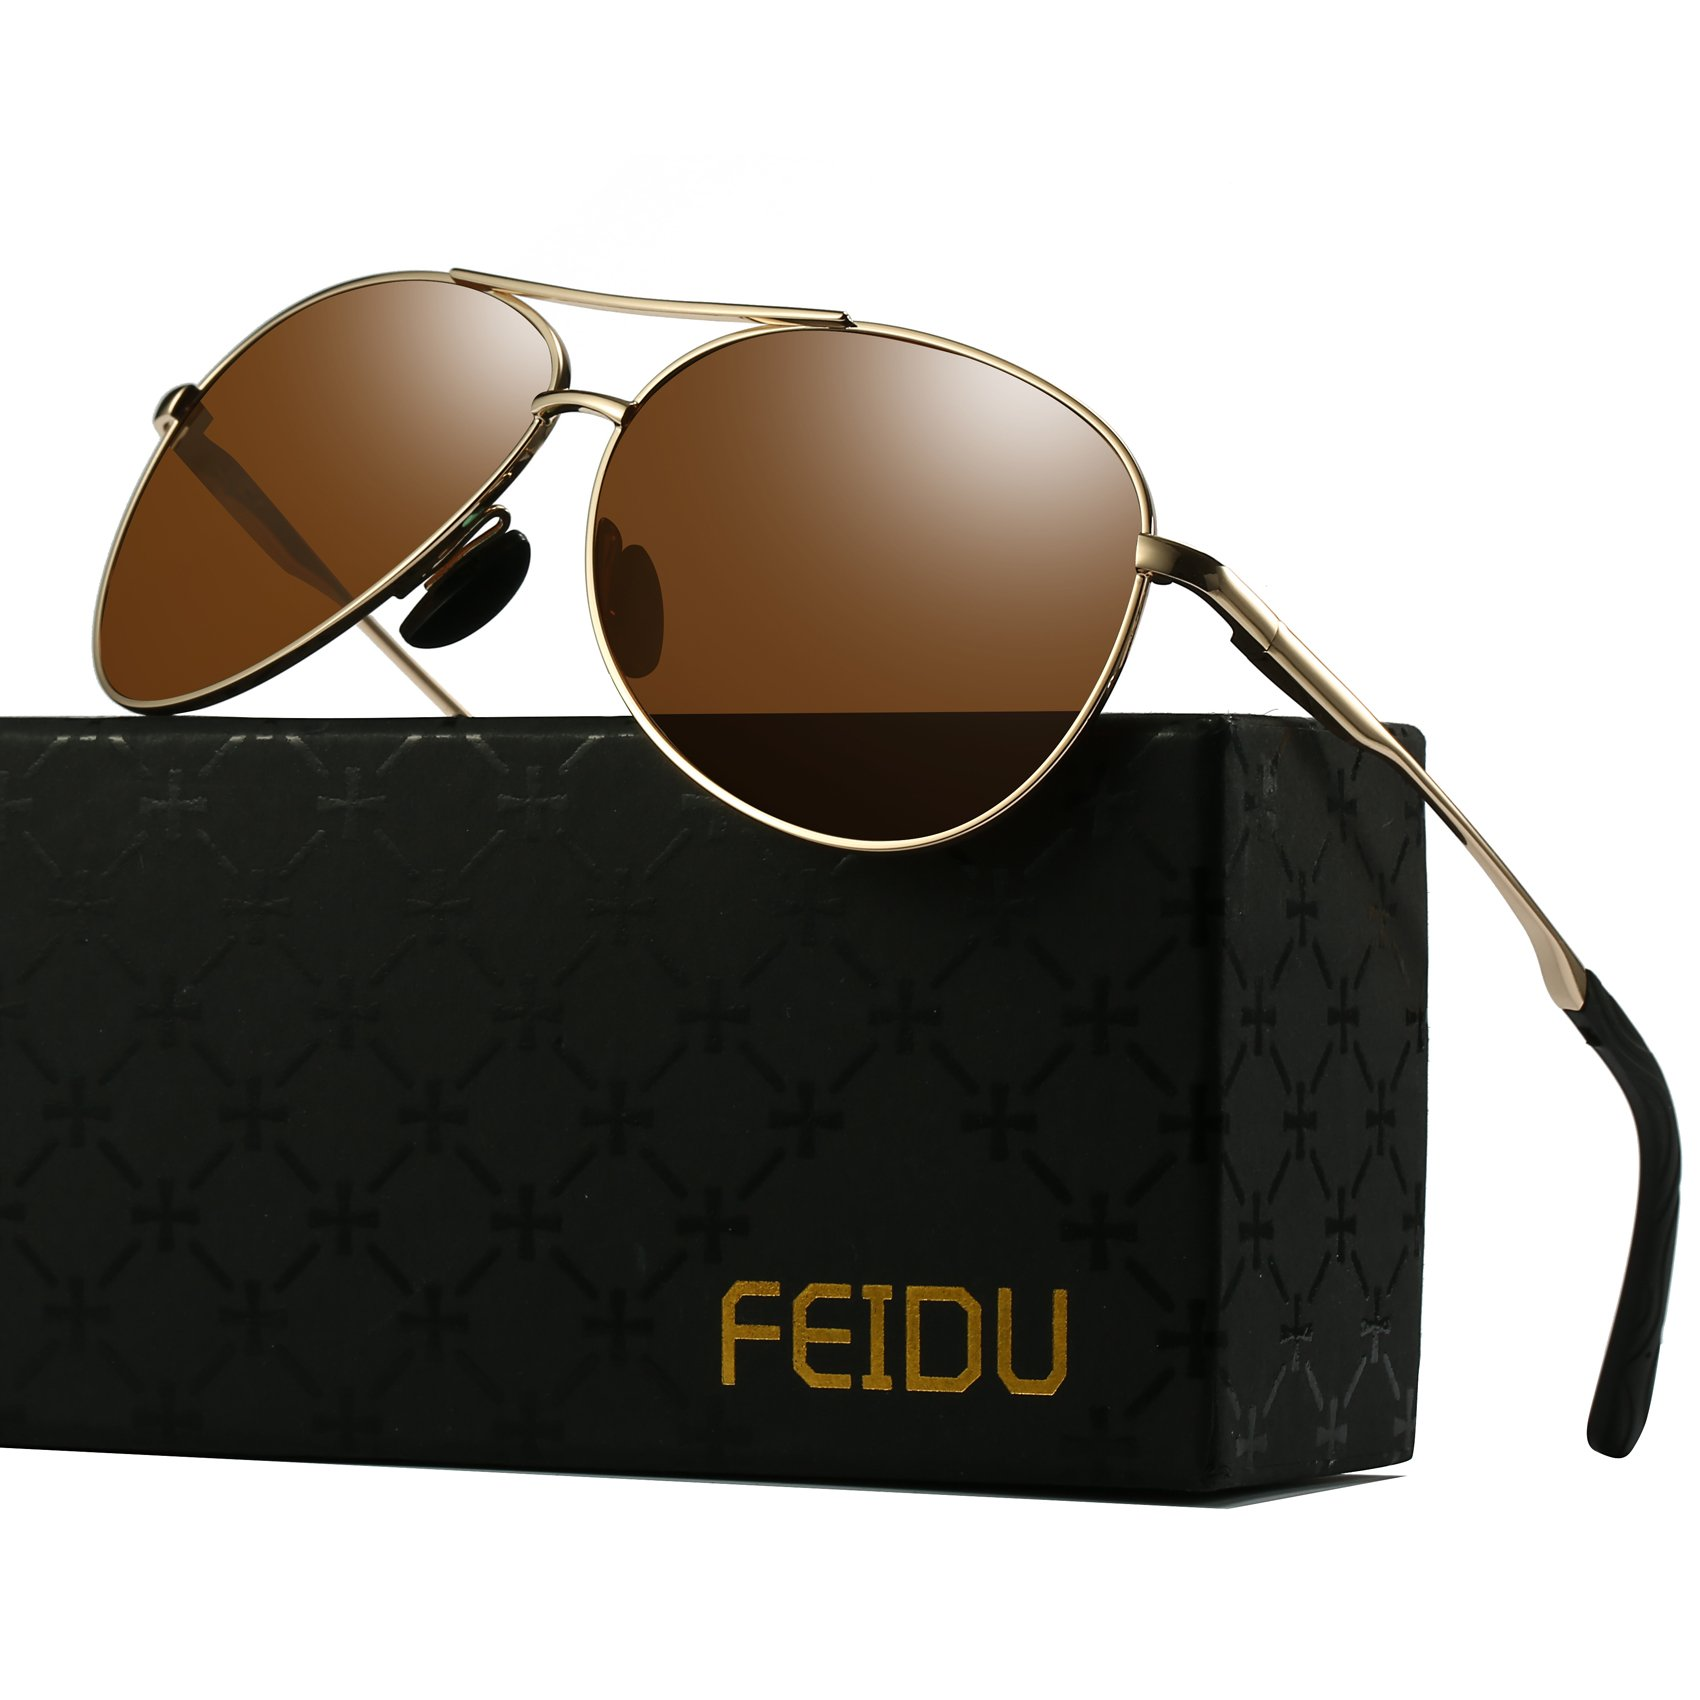 Polarized Aviator Sunglasses for Men - FEIDU Driving Sunglasses Unisex FD9002 (brown-9002, 2.28) by FEIDU